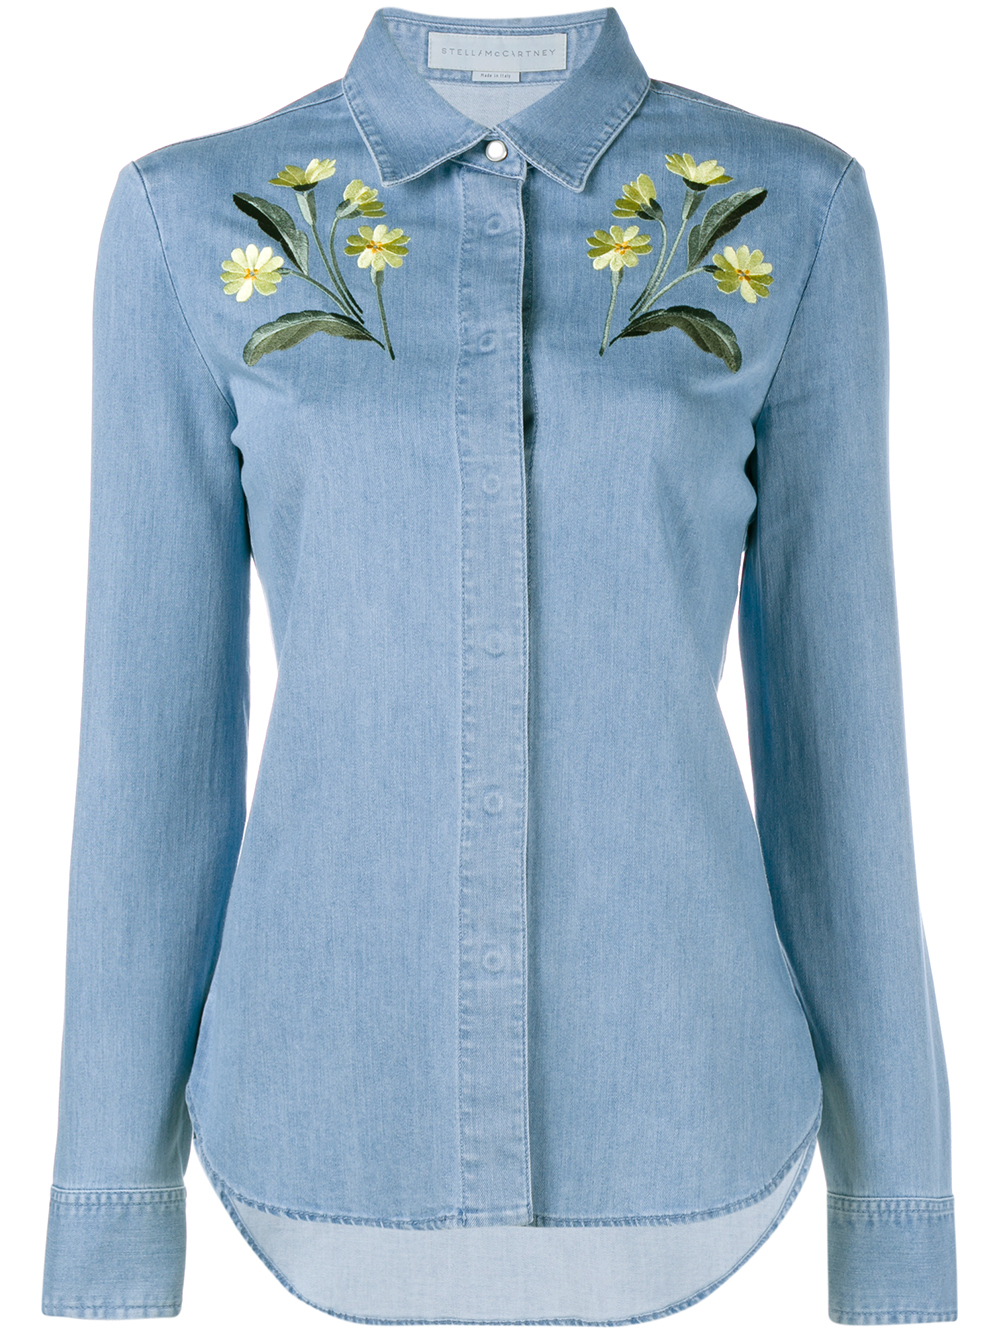 1f5d00d5be5 Lyst - Stella McCartney Floral Embroidered Denim Shirt in Blue